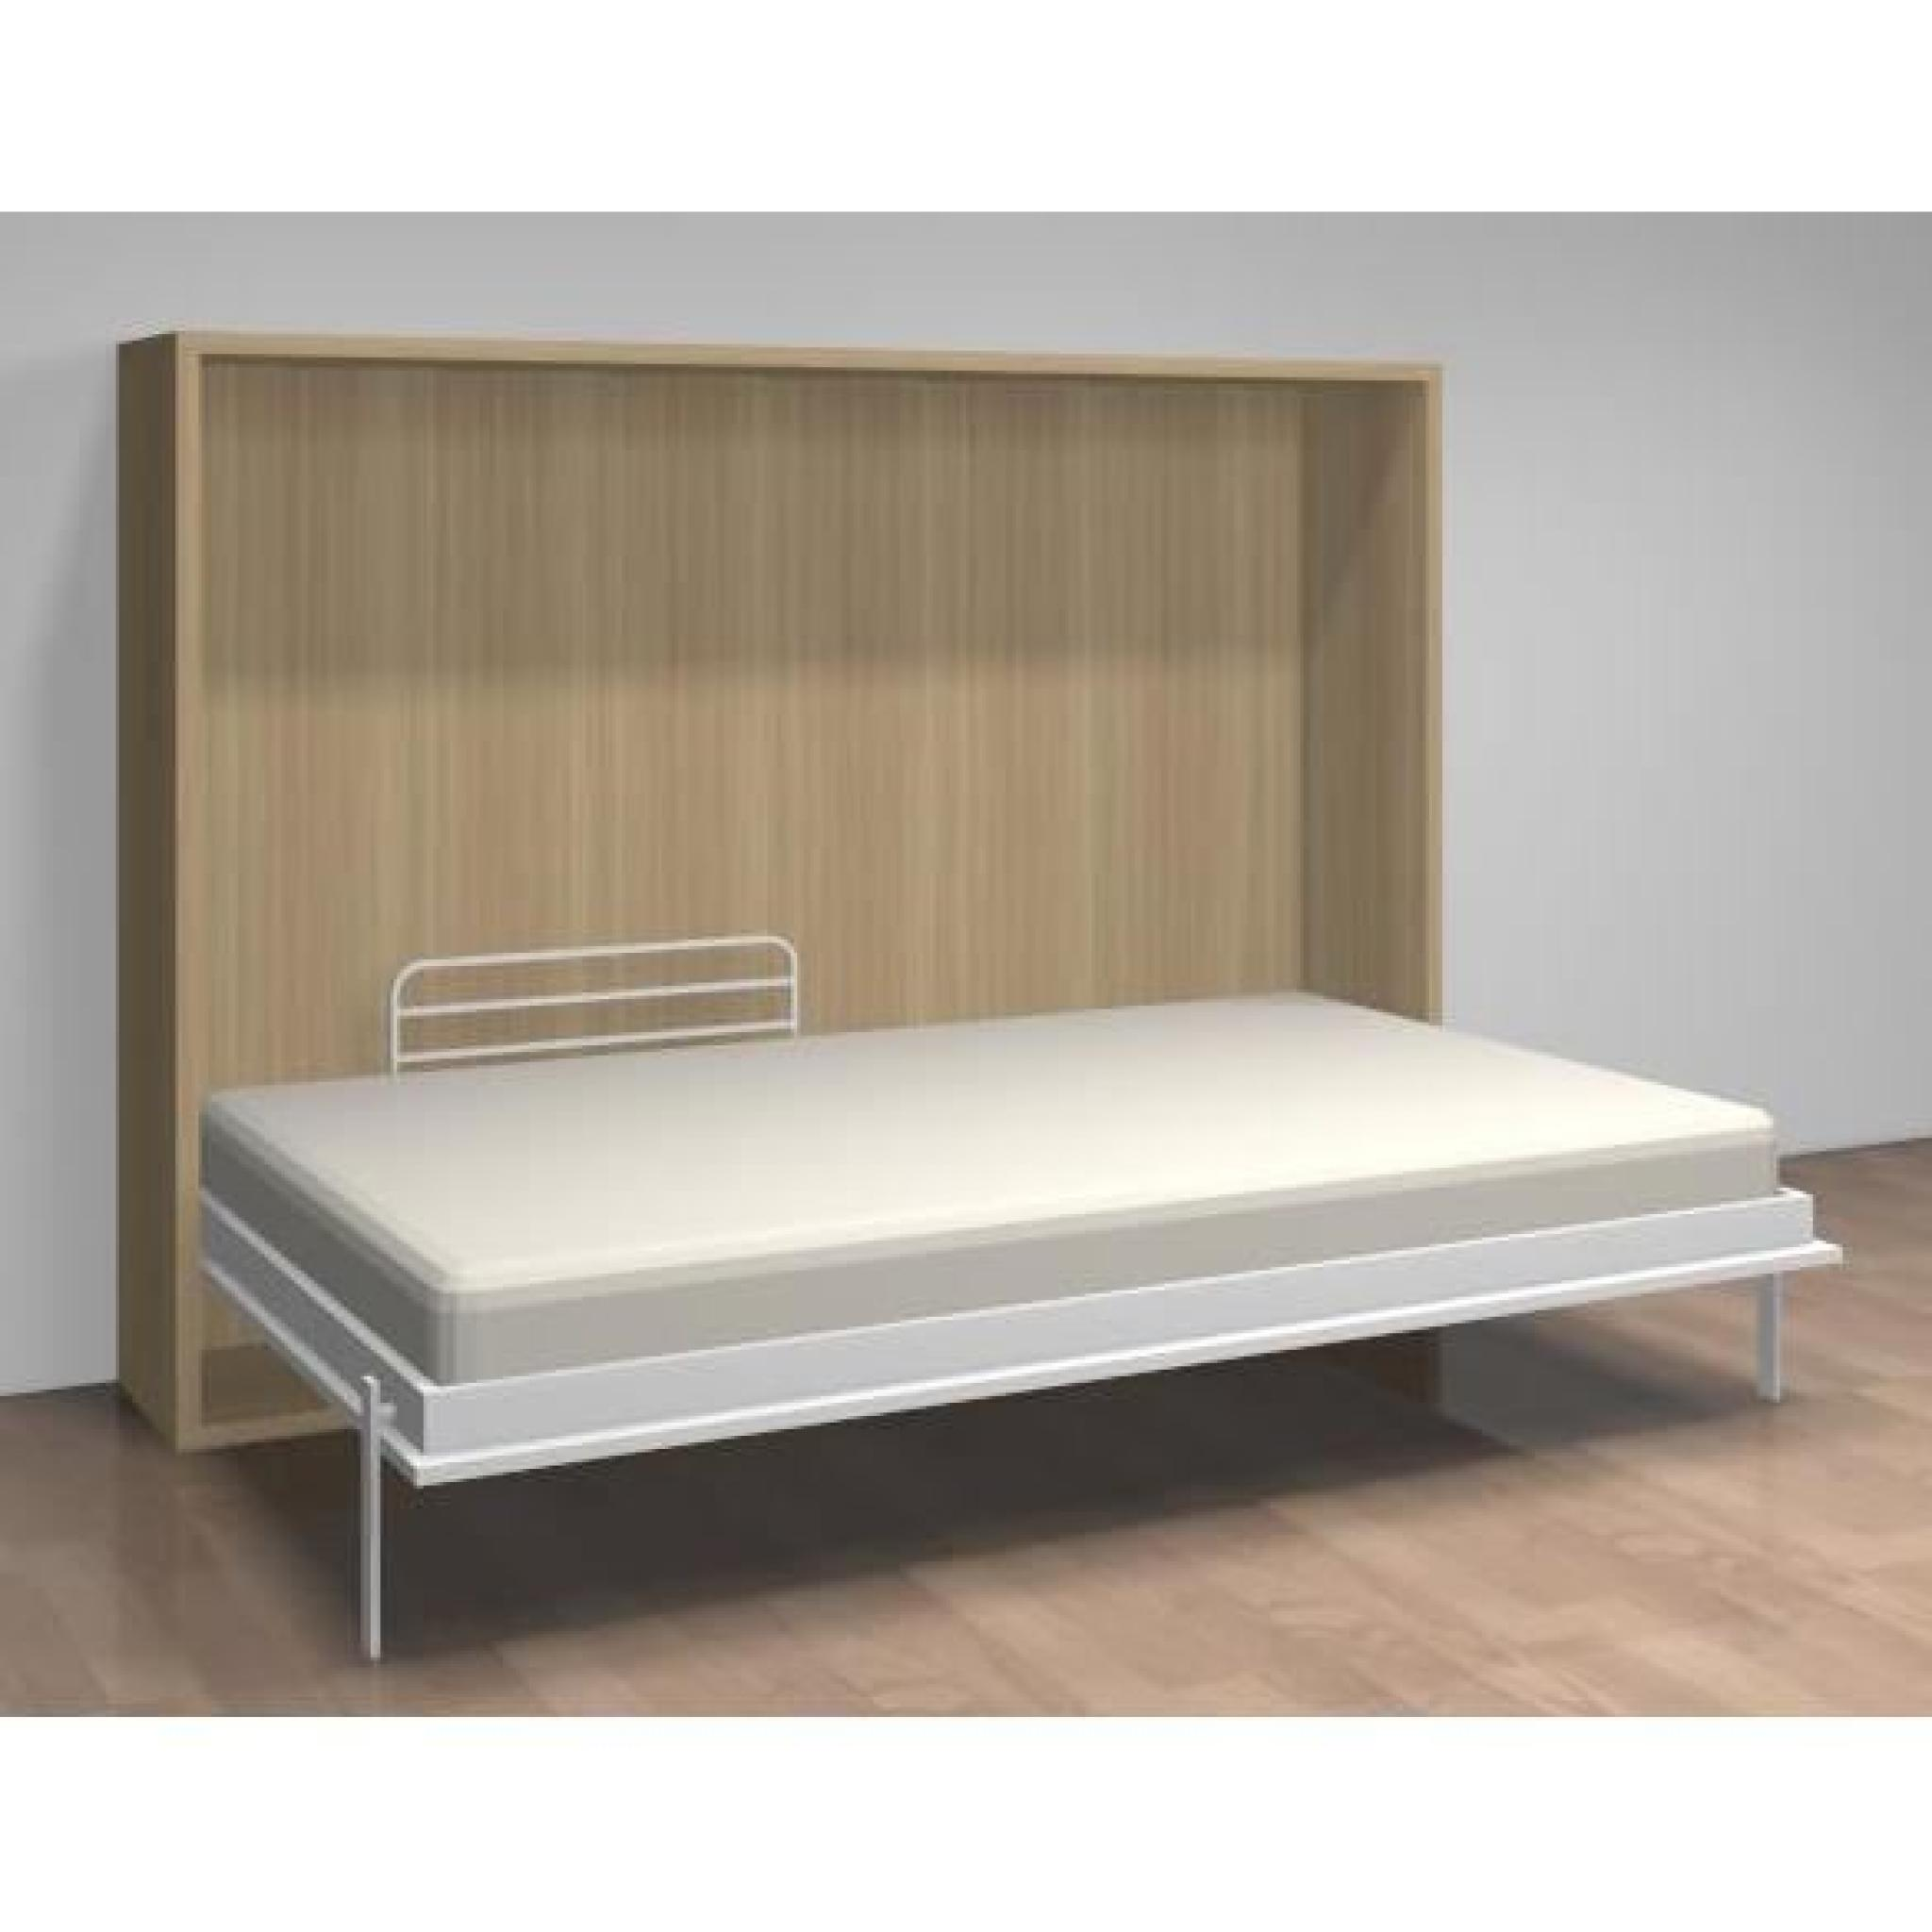 lit relevable horizontal teo 140x190 blanc ch ne achat vente lit escamotable pas cher. Black Bedroom Furniture Sets. Home Design Ideas